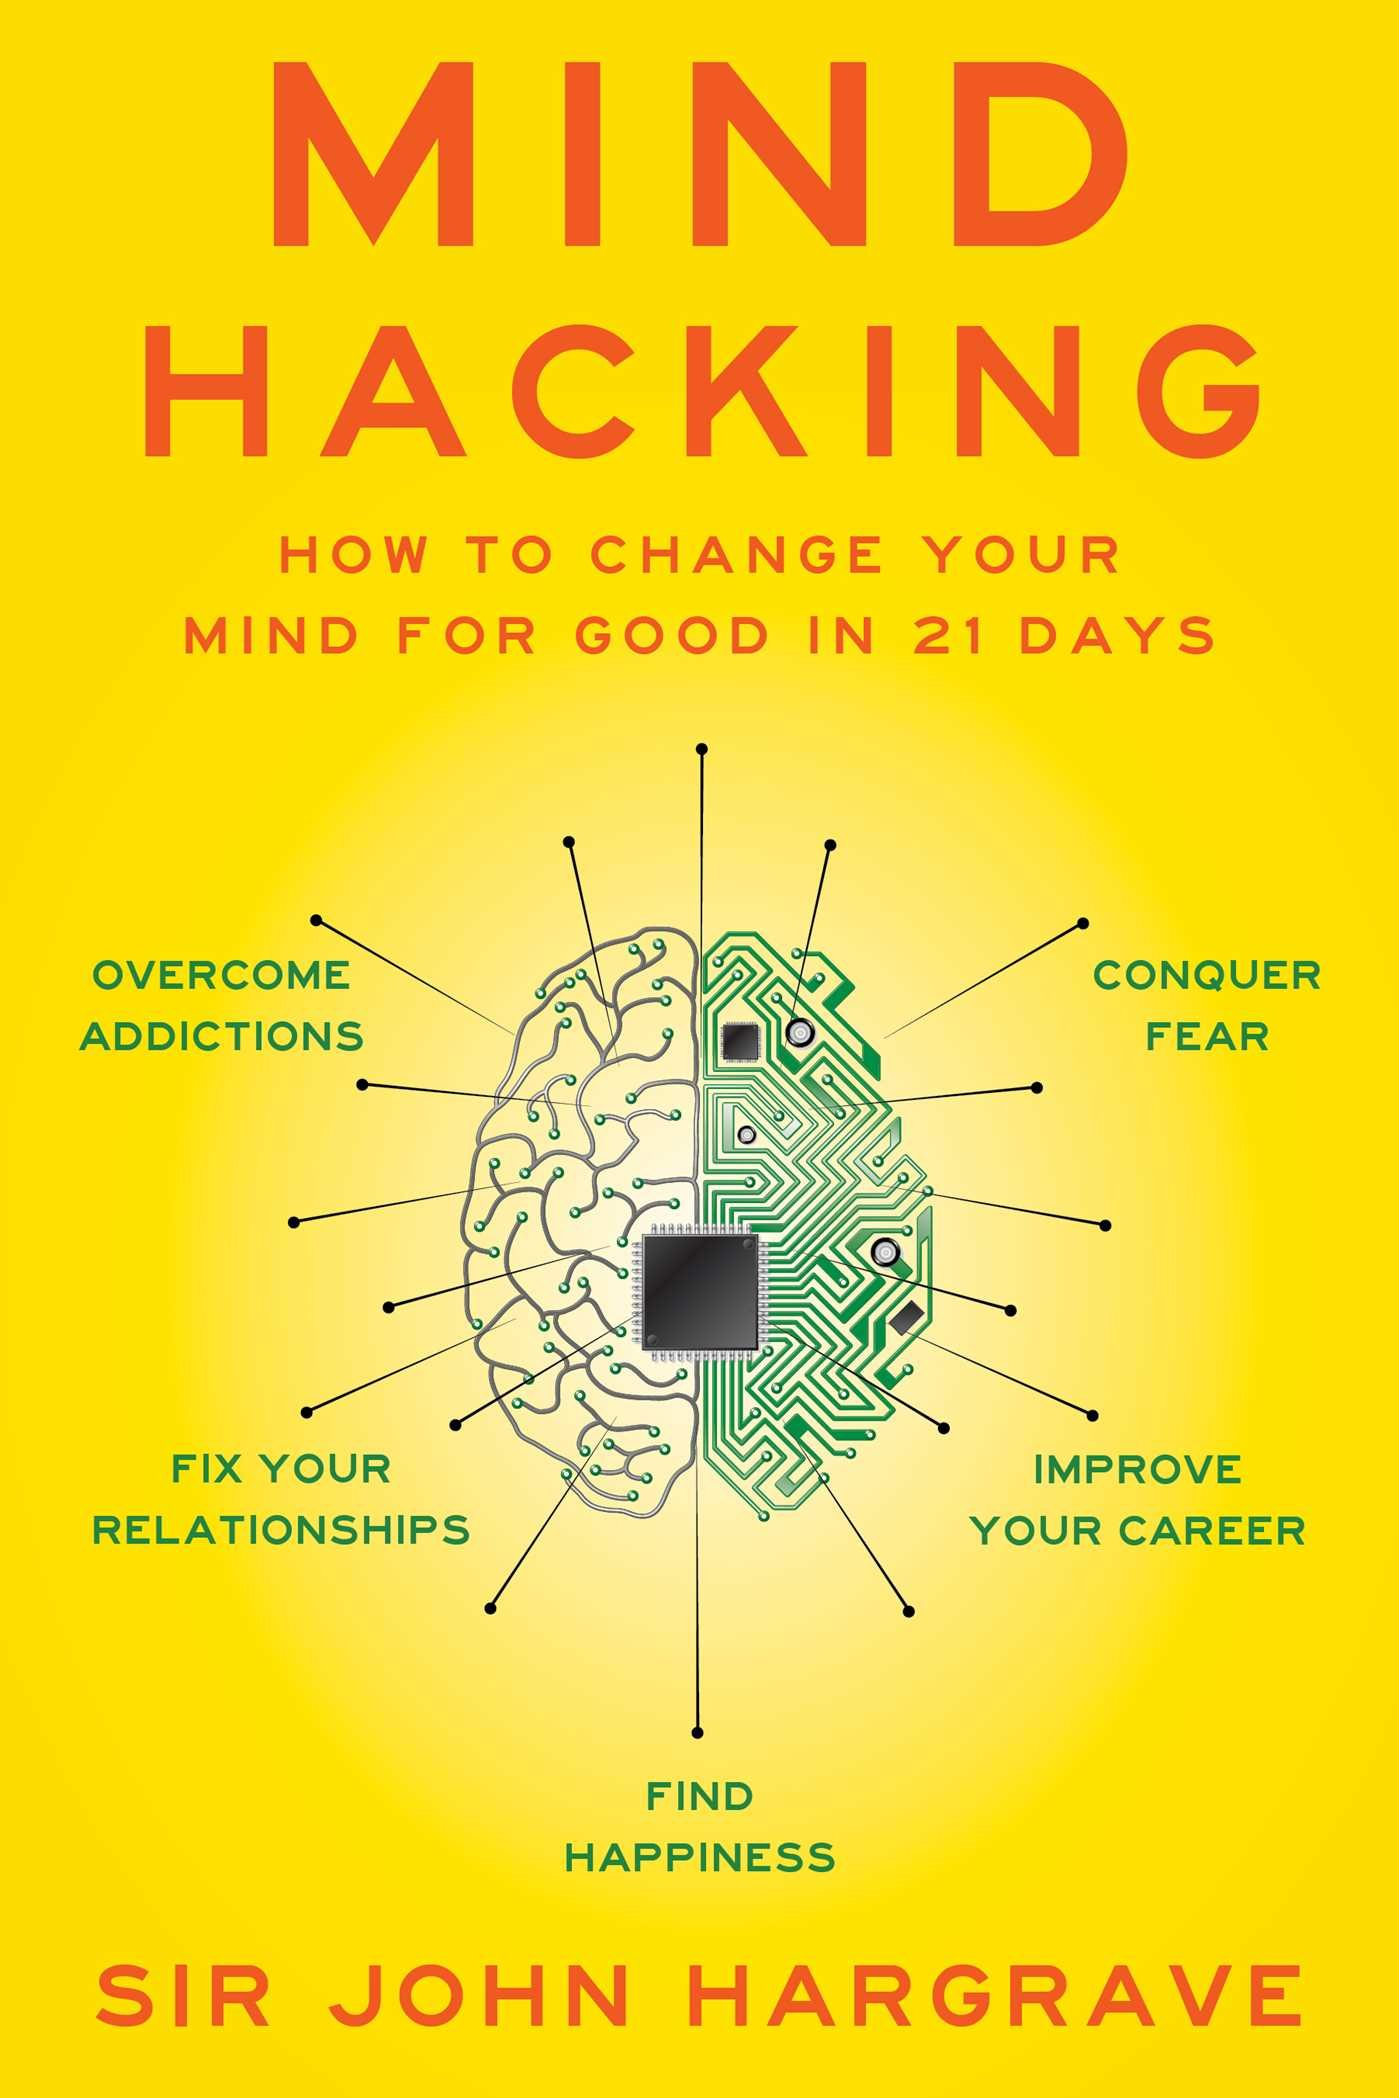 Mind hacking how to change your mind for good in 21 days sir john mind hacking how to change your mind for good in 21 days sir john hargrave 9781501105661 amazon books fandeluxe Images